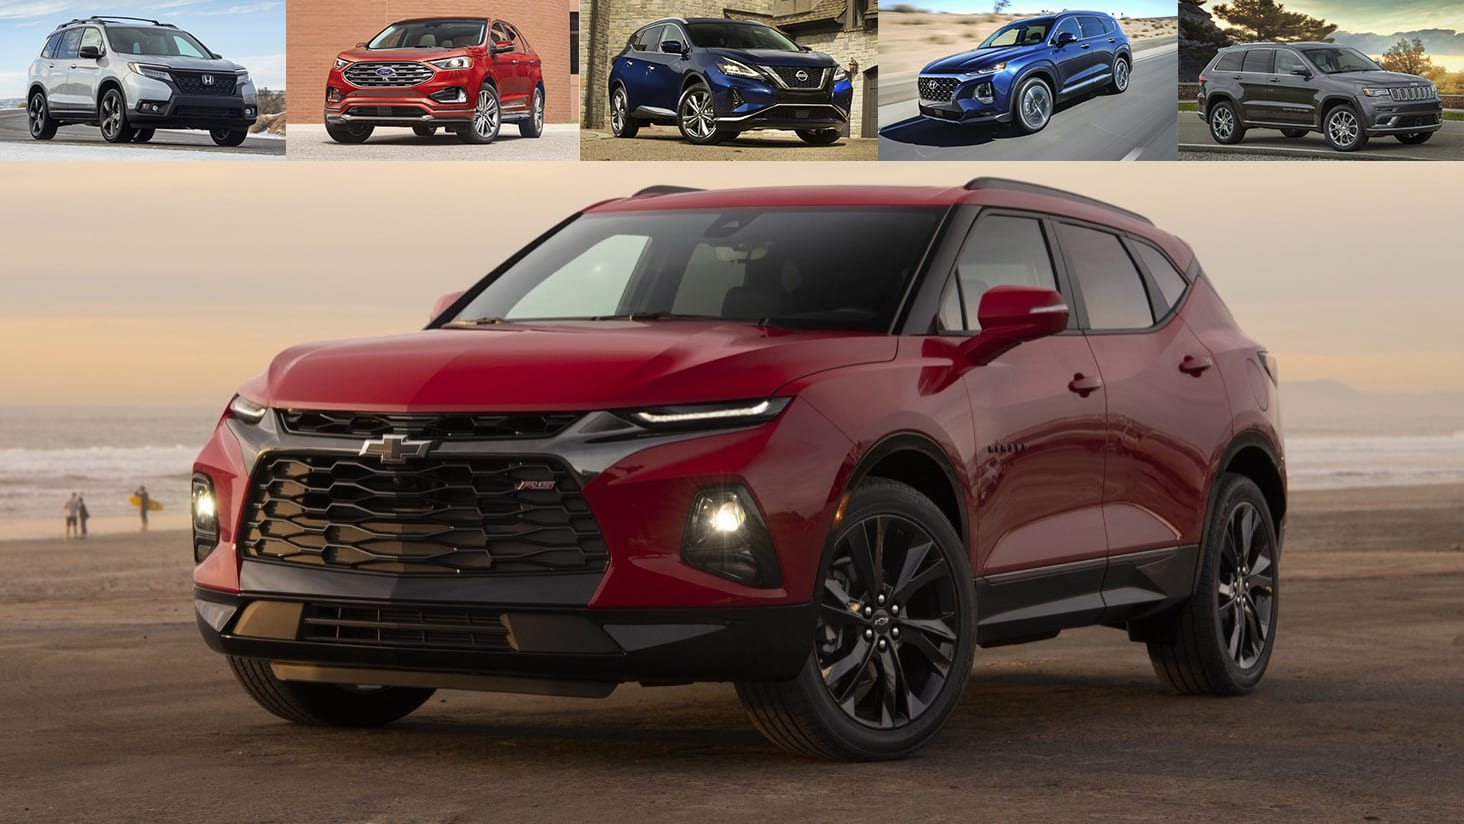 2019 Chevrolet Blazer Reviews | Price, specs, features